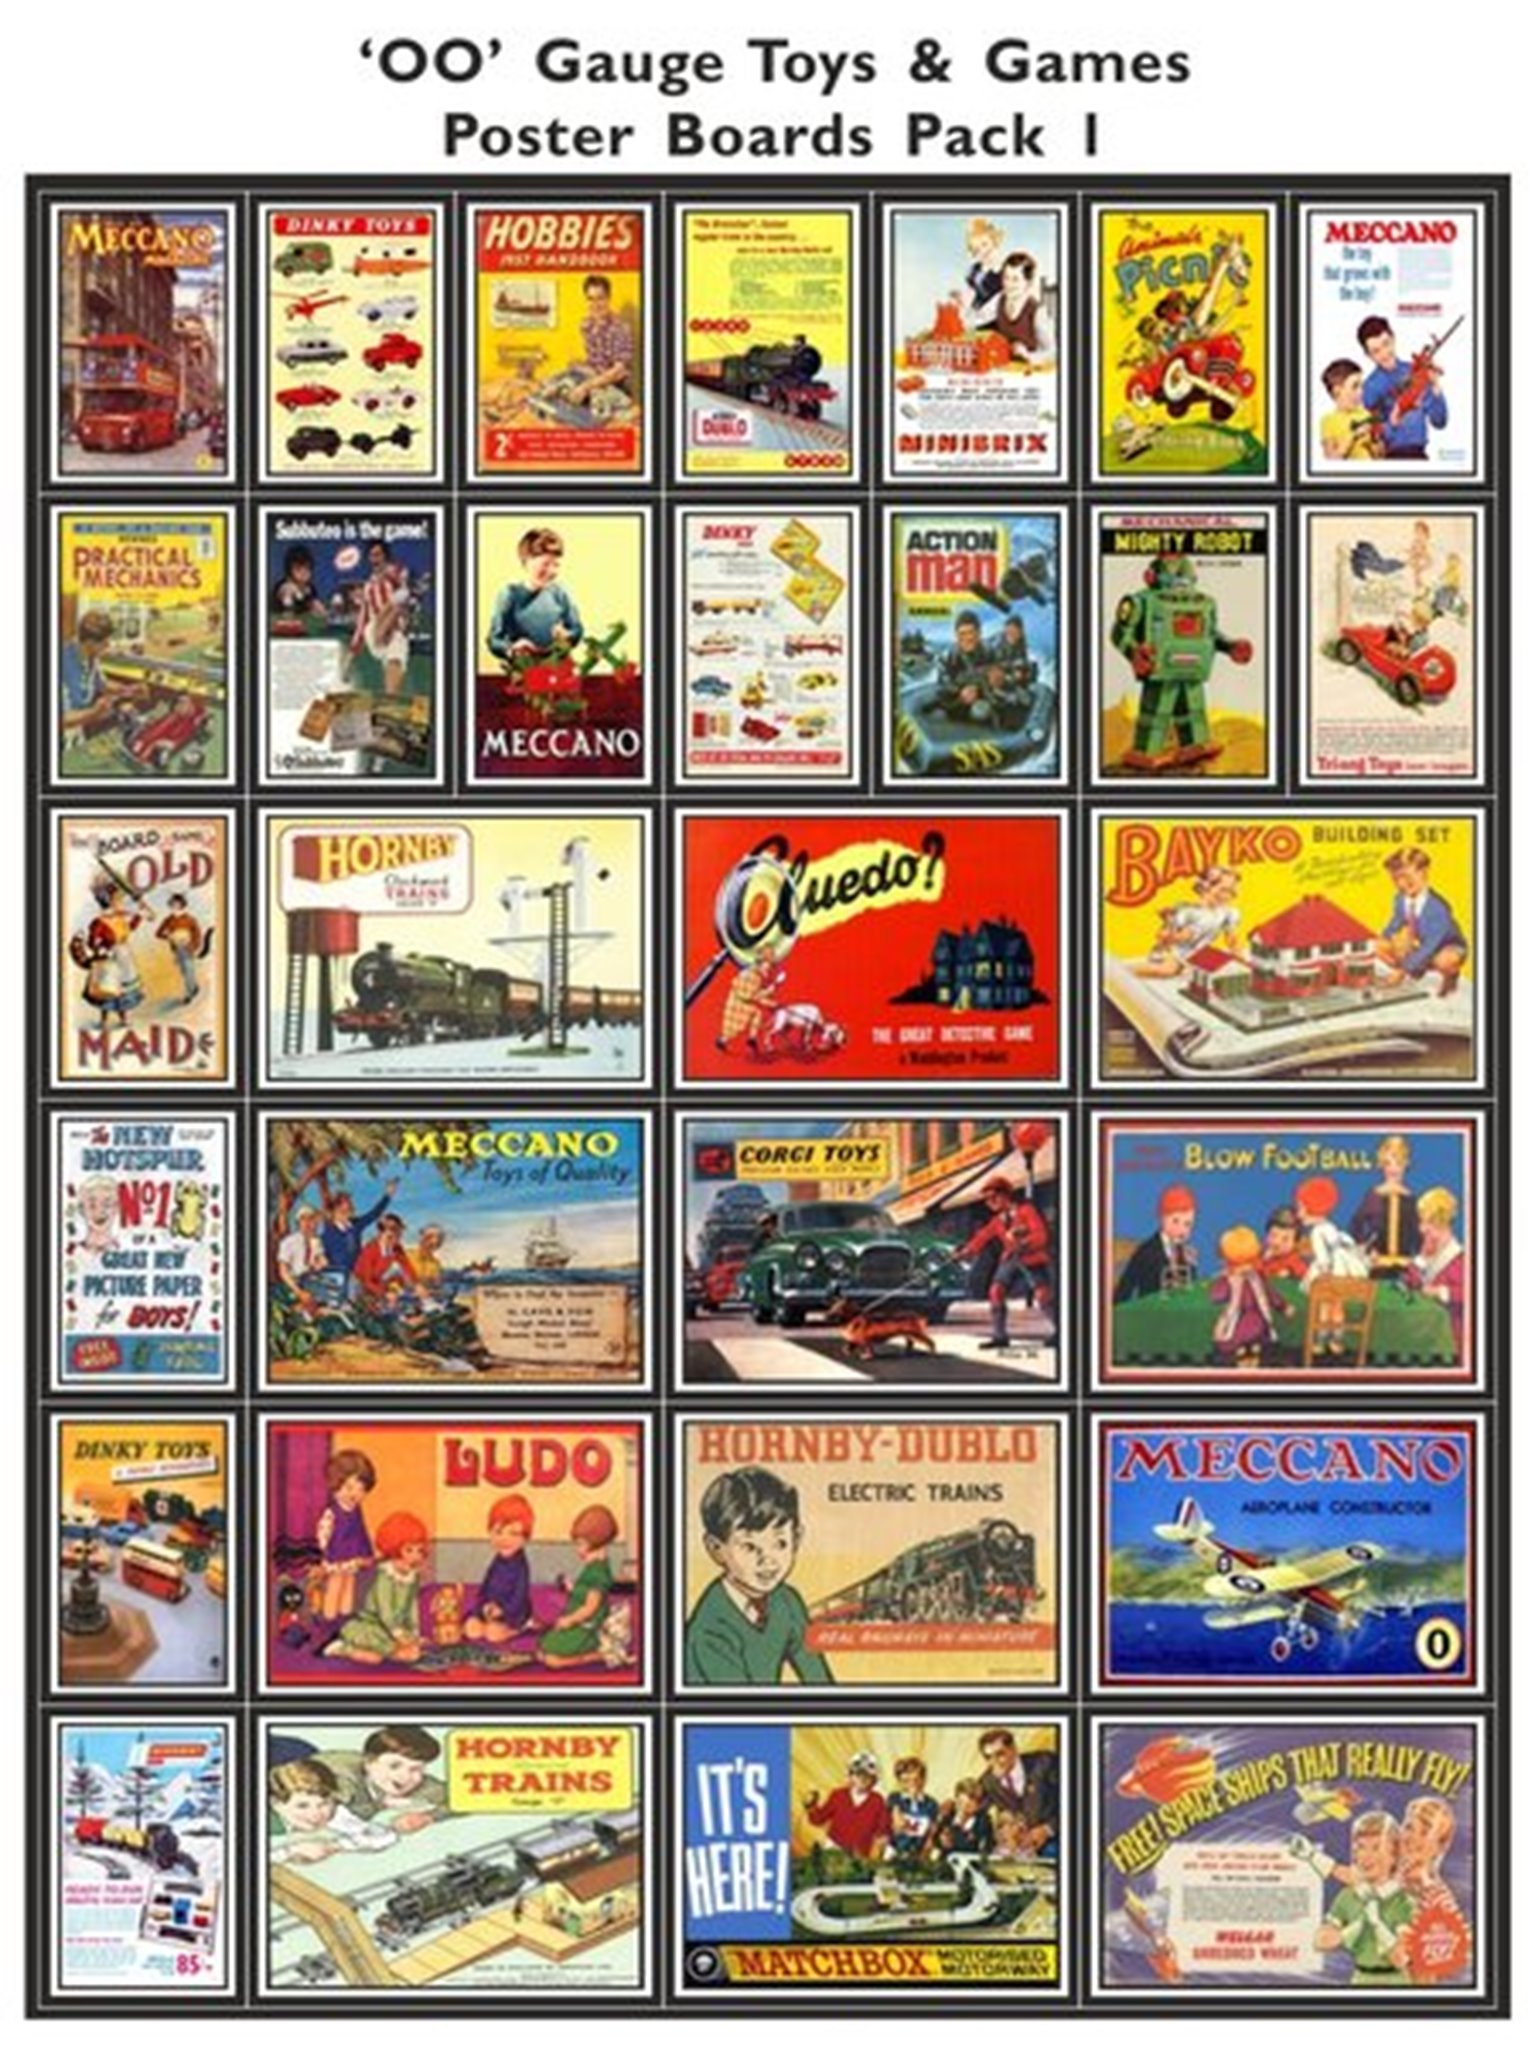 Toys & Games Poster Boards Pack 1